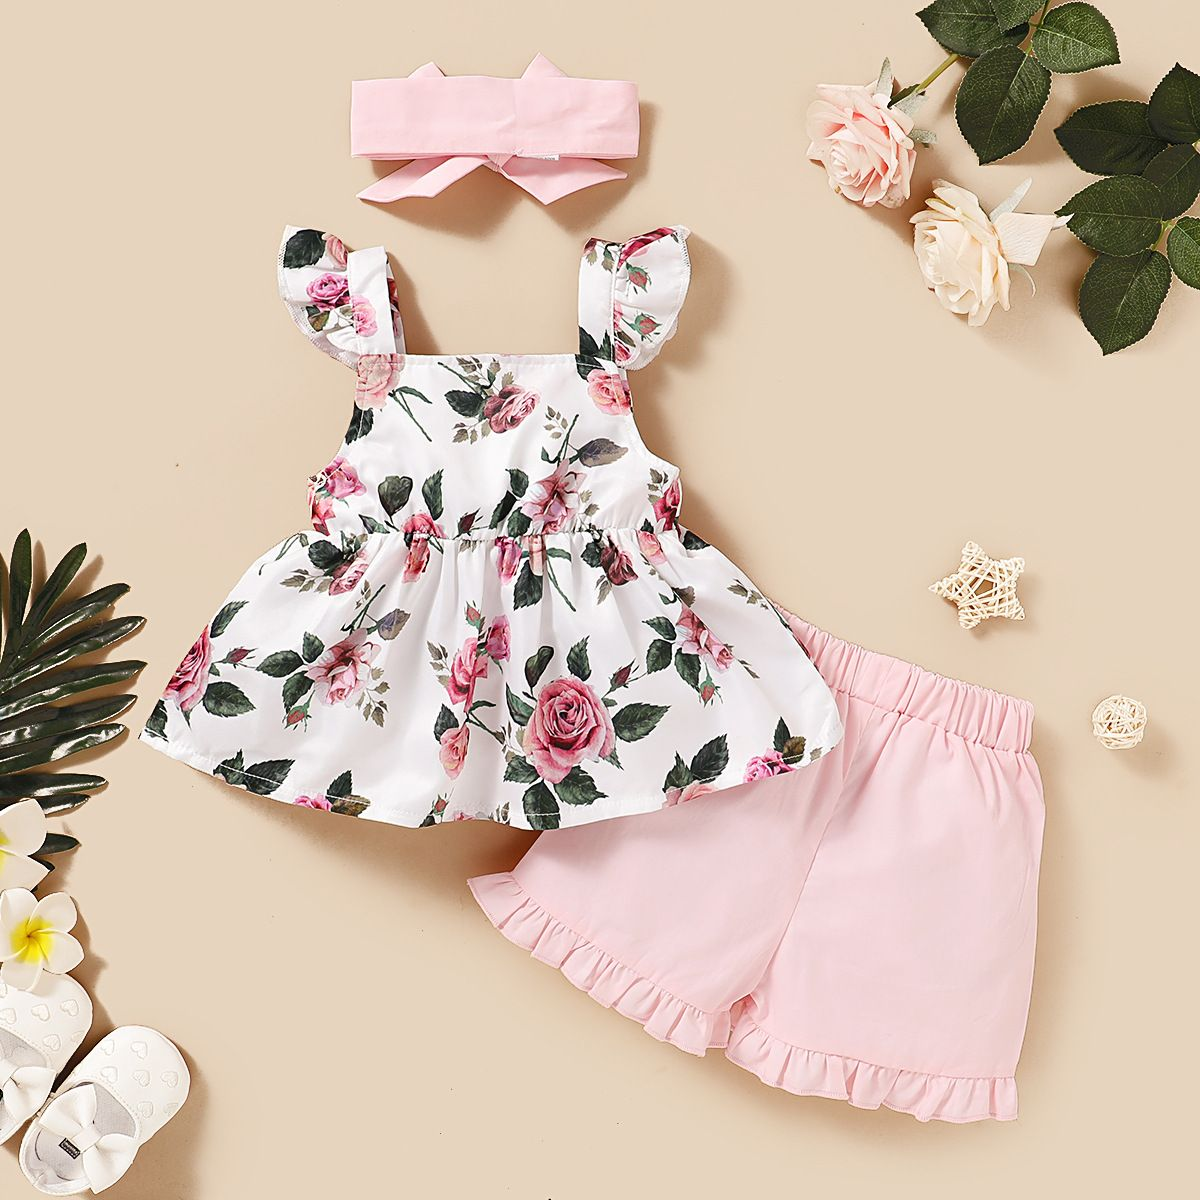 Patpat 3 Piece Allover Flutter Sleeve Top And Shorts Set In 2020 Baby Girl Frocks Flutter Sleeve Top Girl Outfits